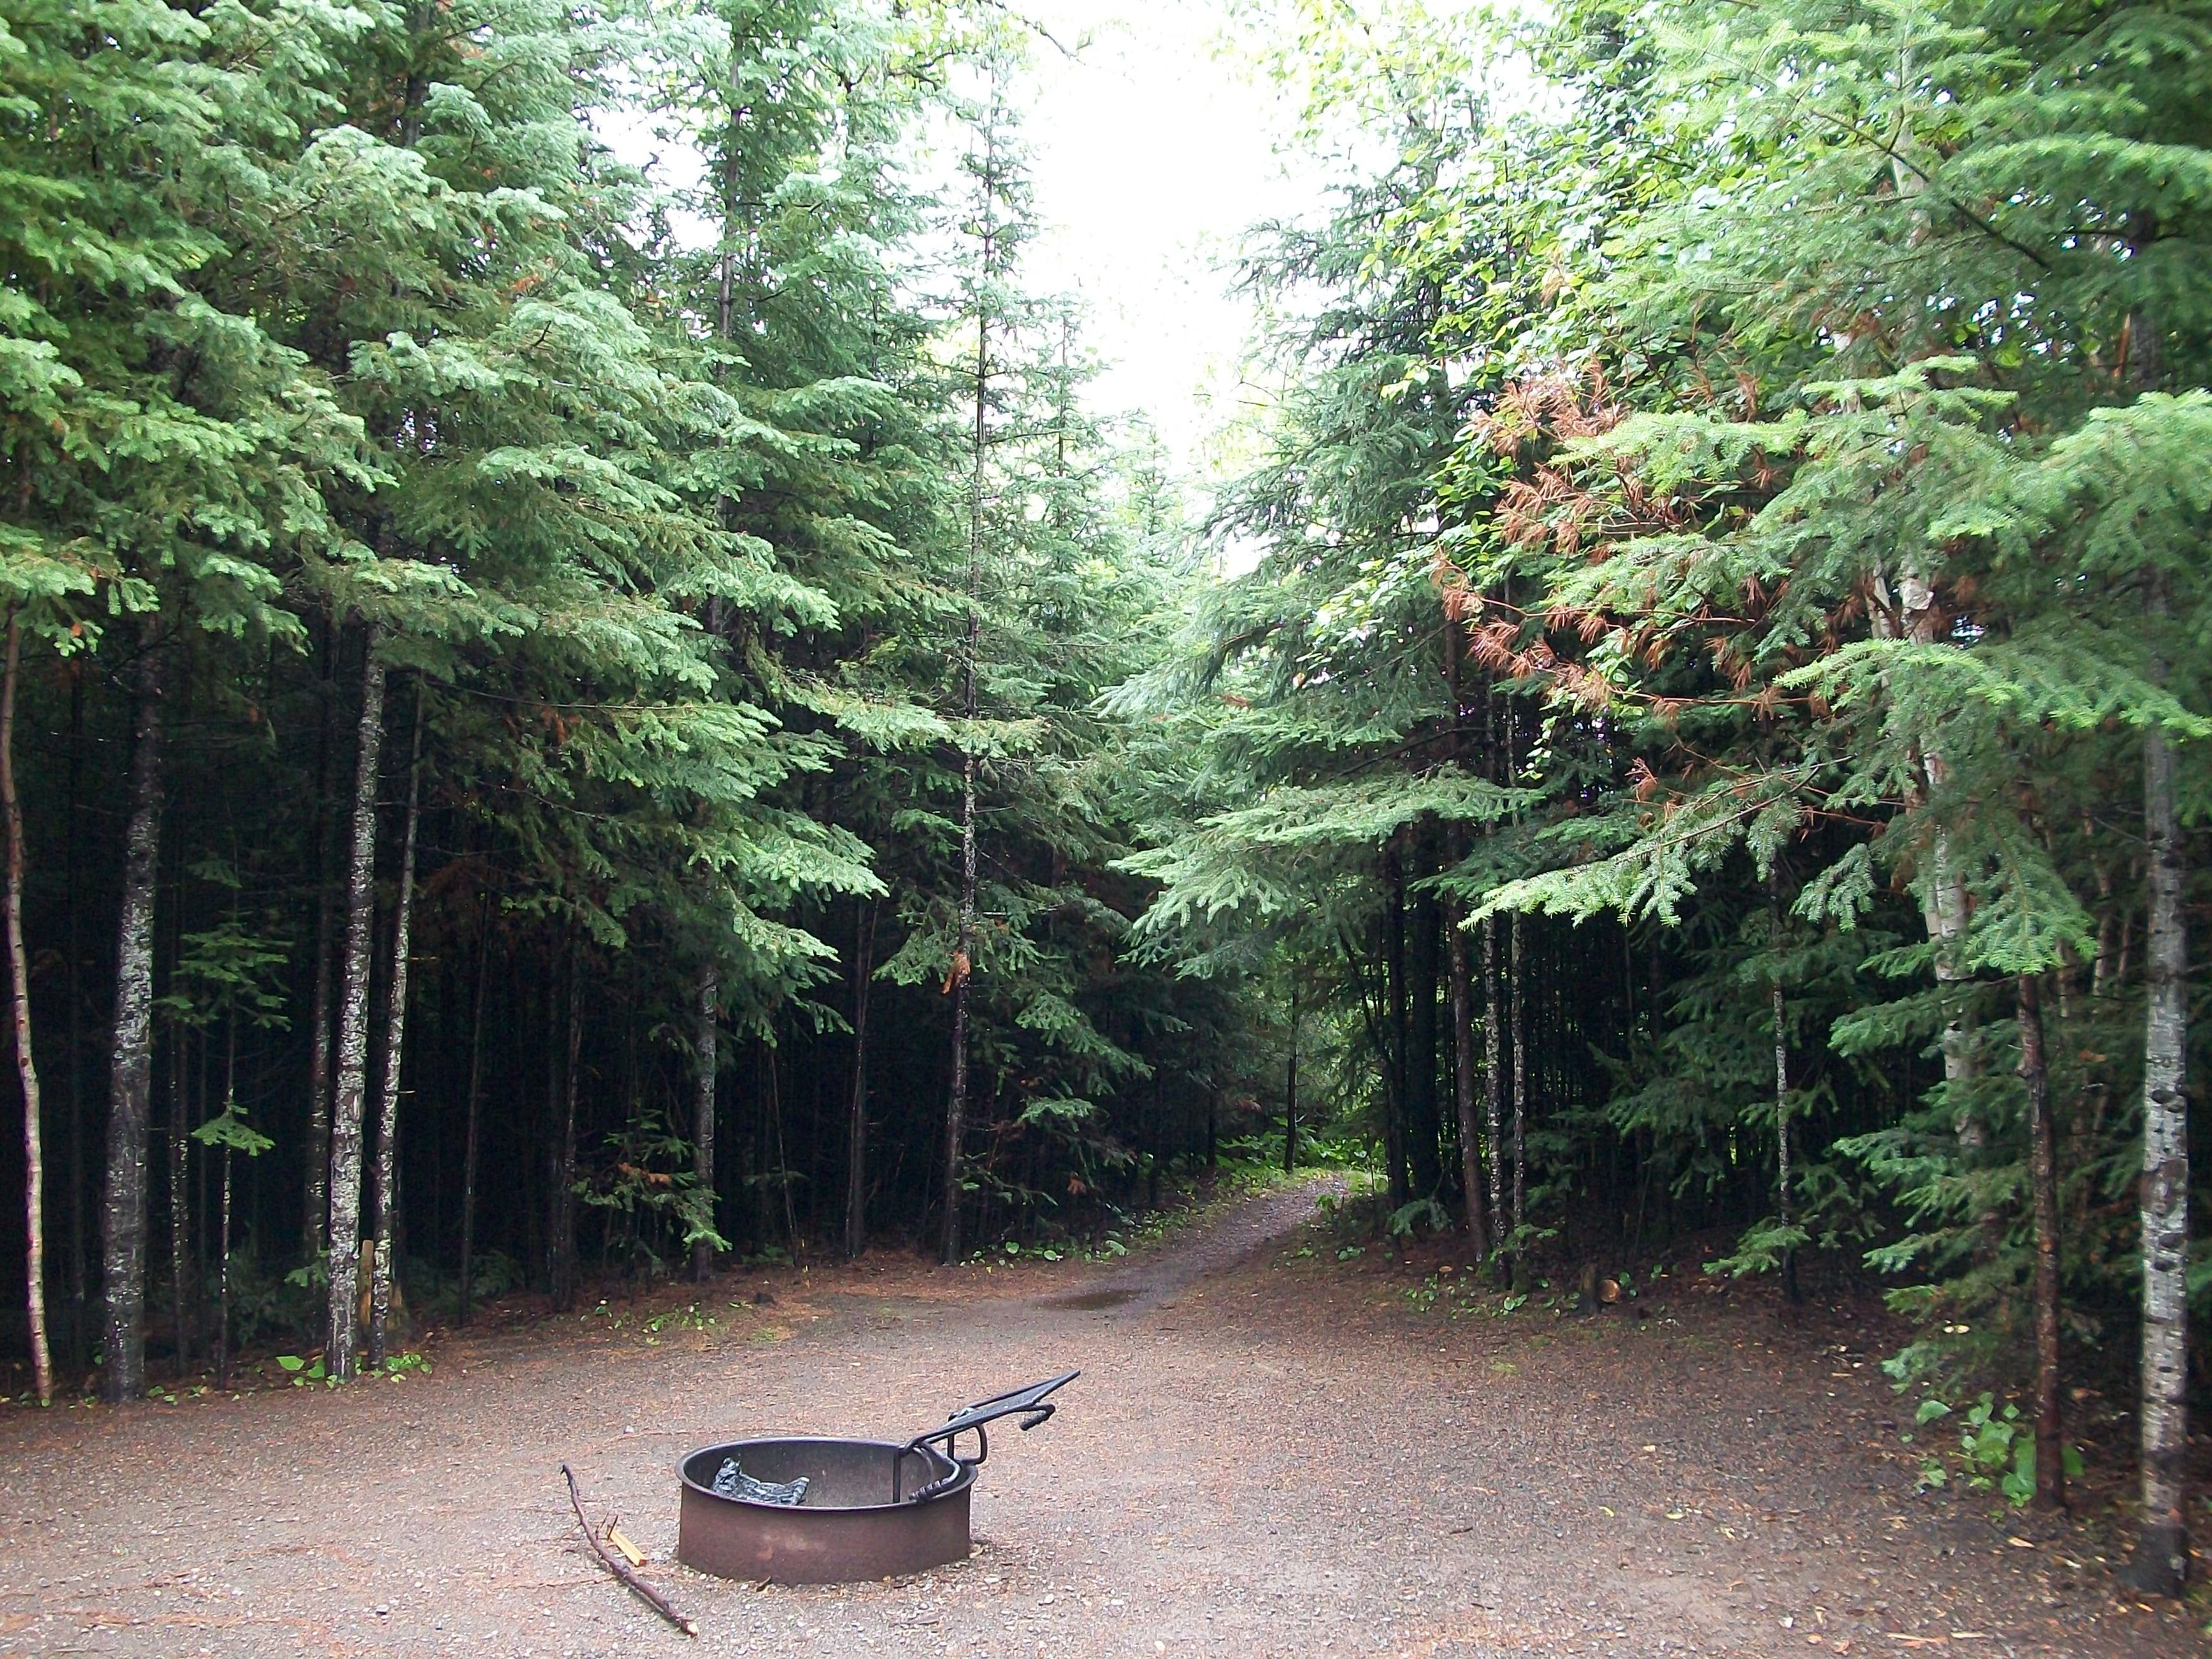 Treaty Camping in the Superior National Forest